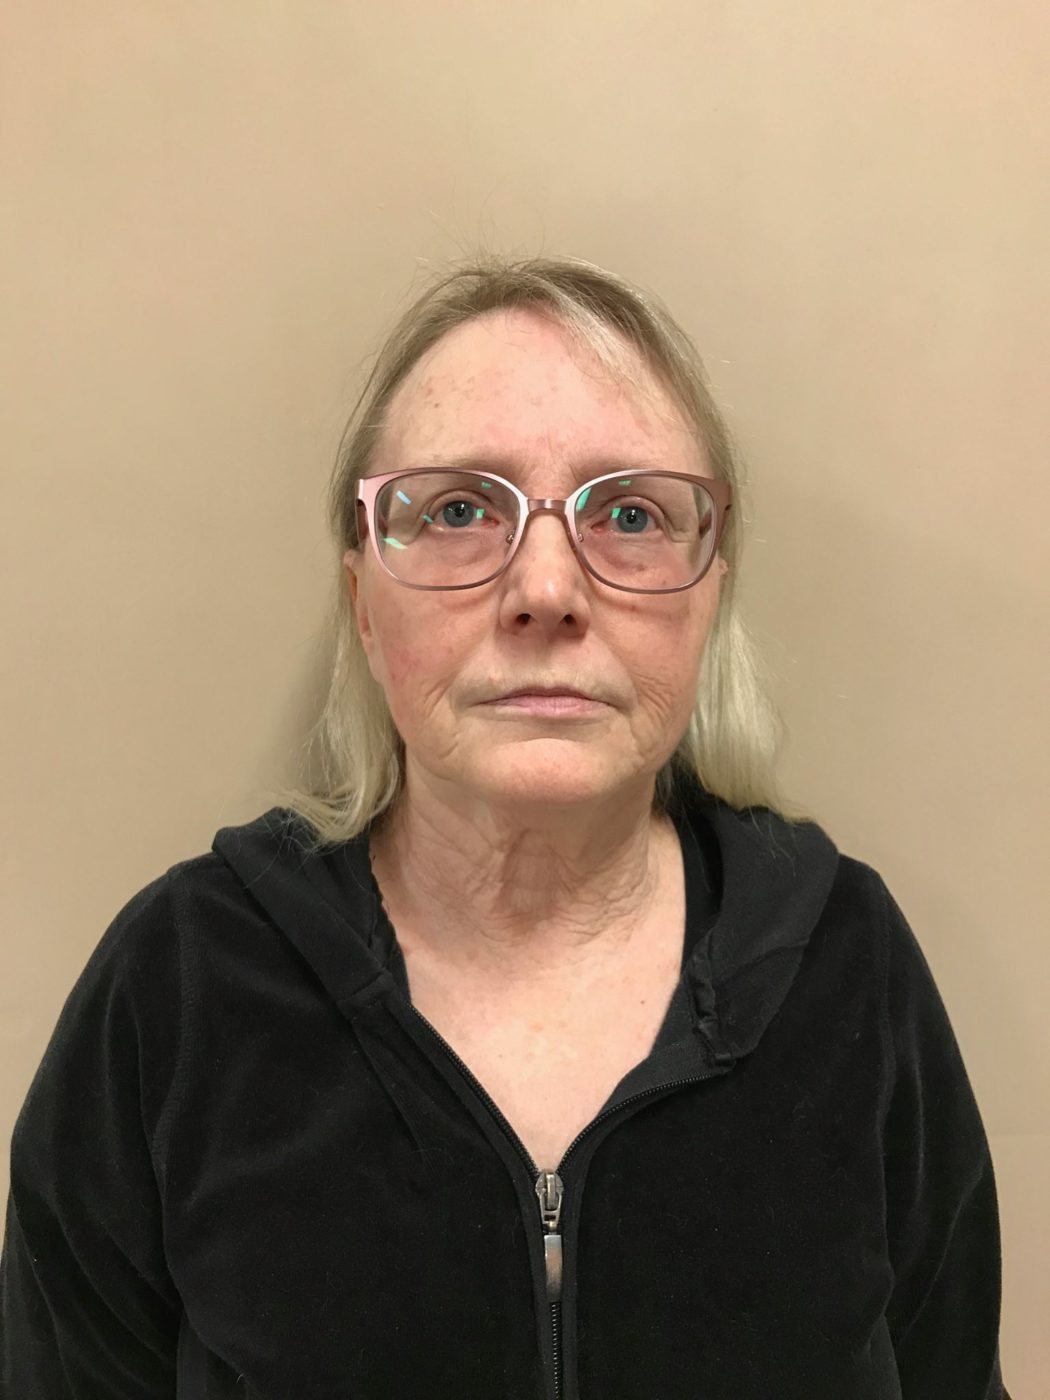 Lincoln Woman Arrested for Grand Theft